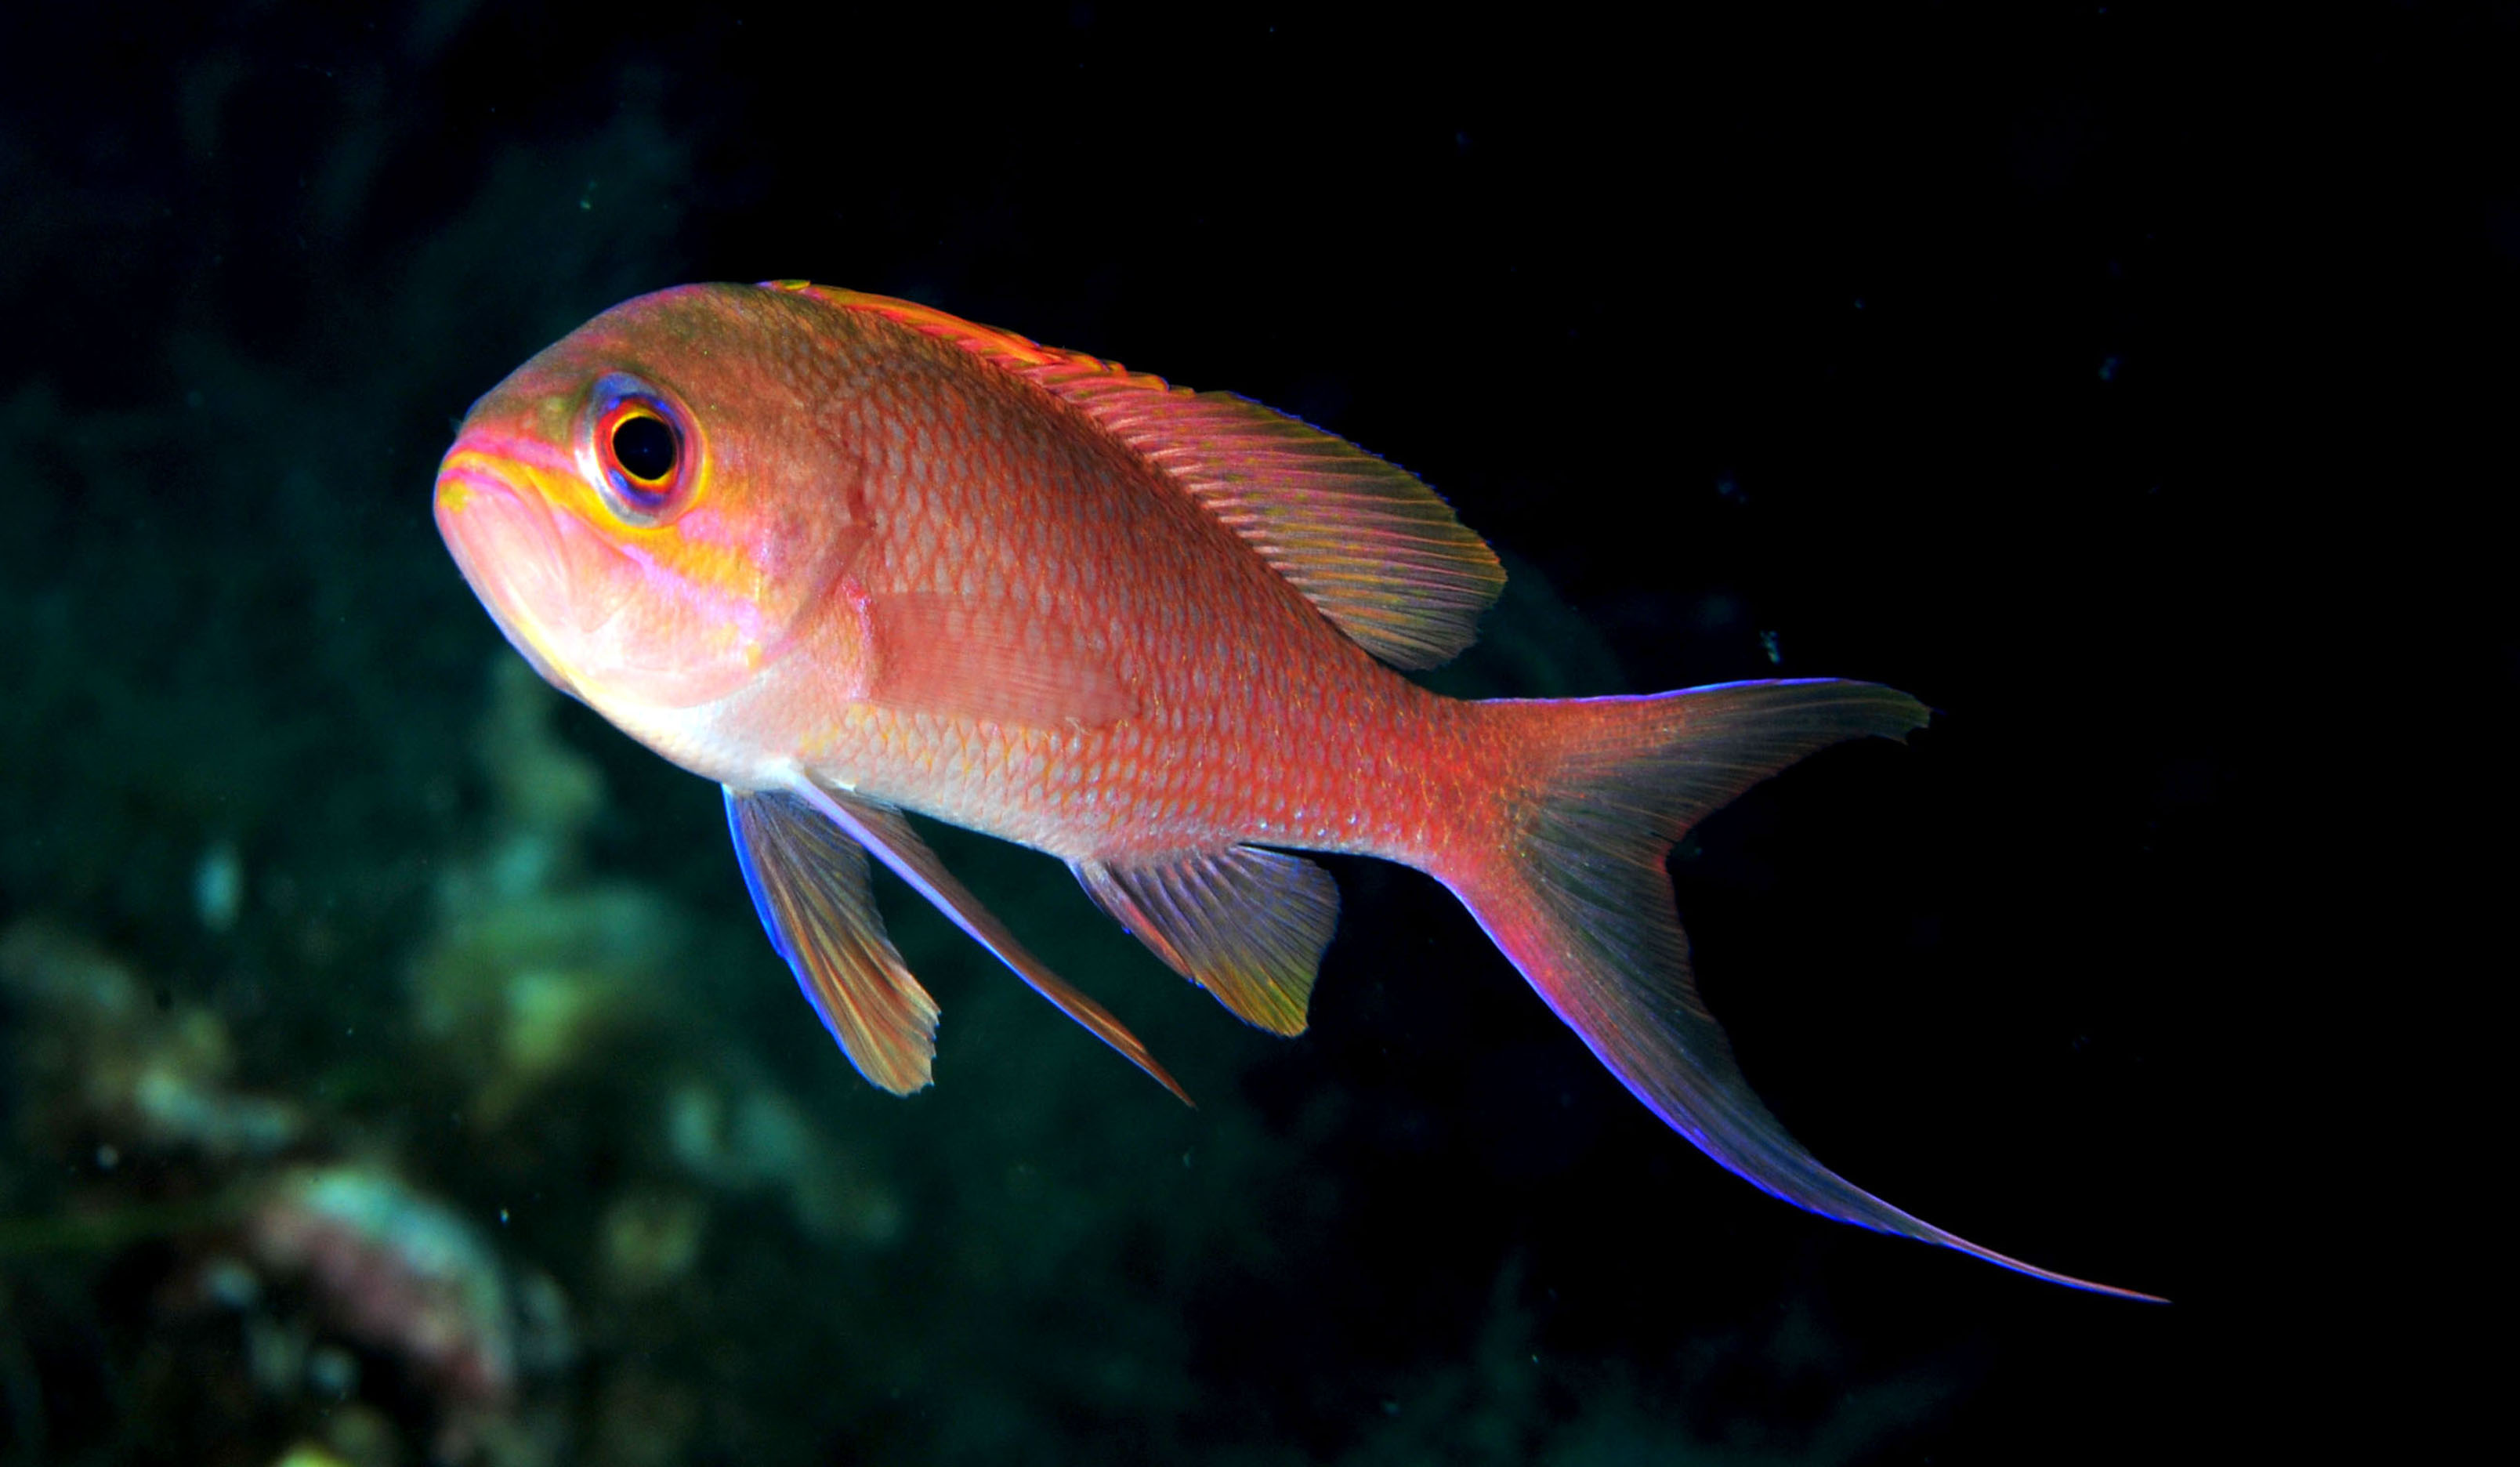 ANTHIAS-ANTHIAS-Castagnola-rossa La castagnola rossa (Anthias anthias)